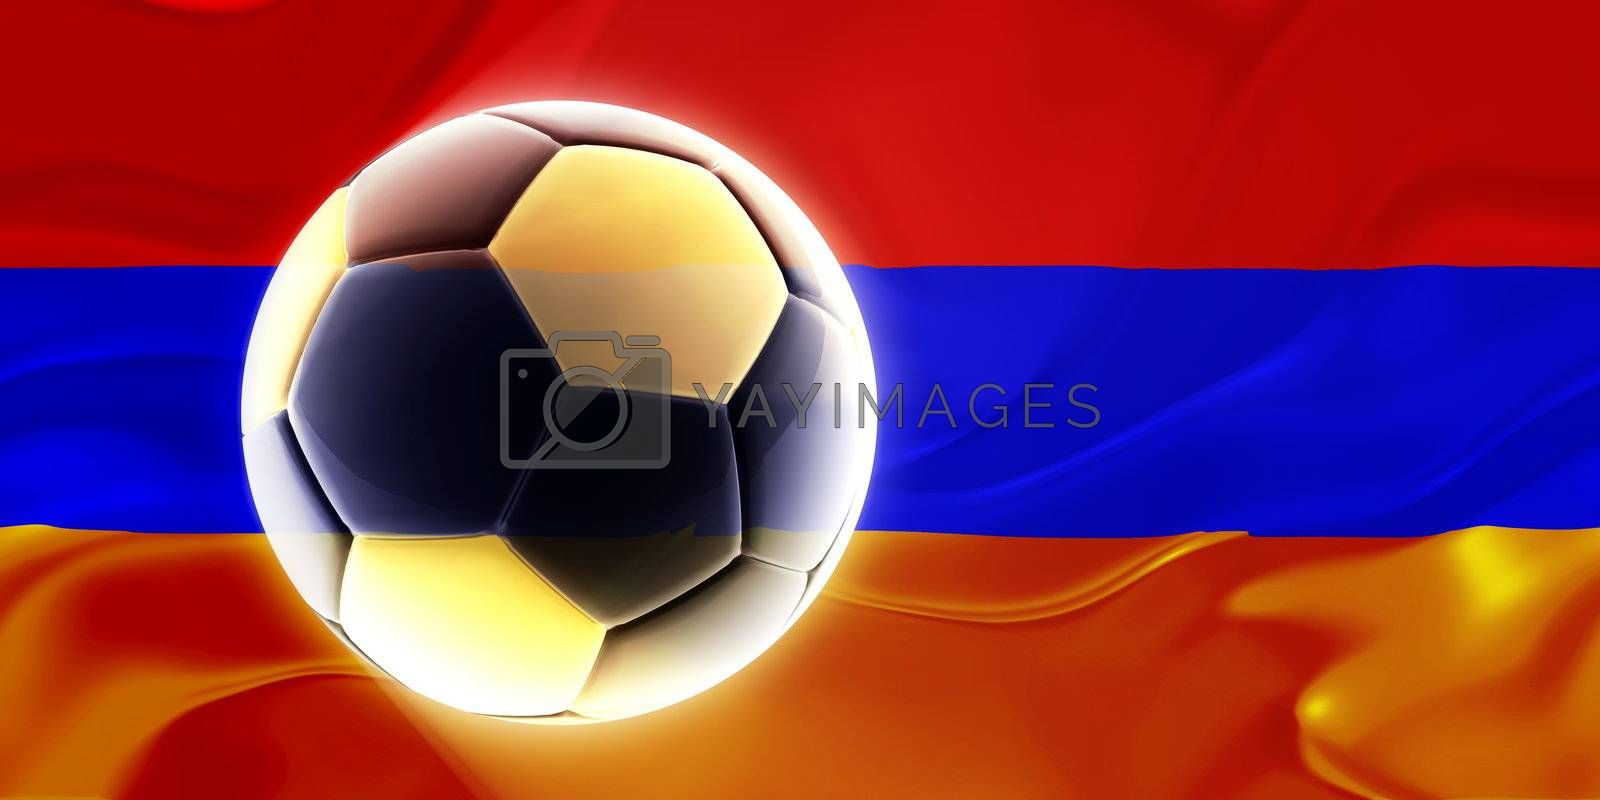 Flag of Armenia, national symbol illustration clipart wavy fabric sports soccer football